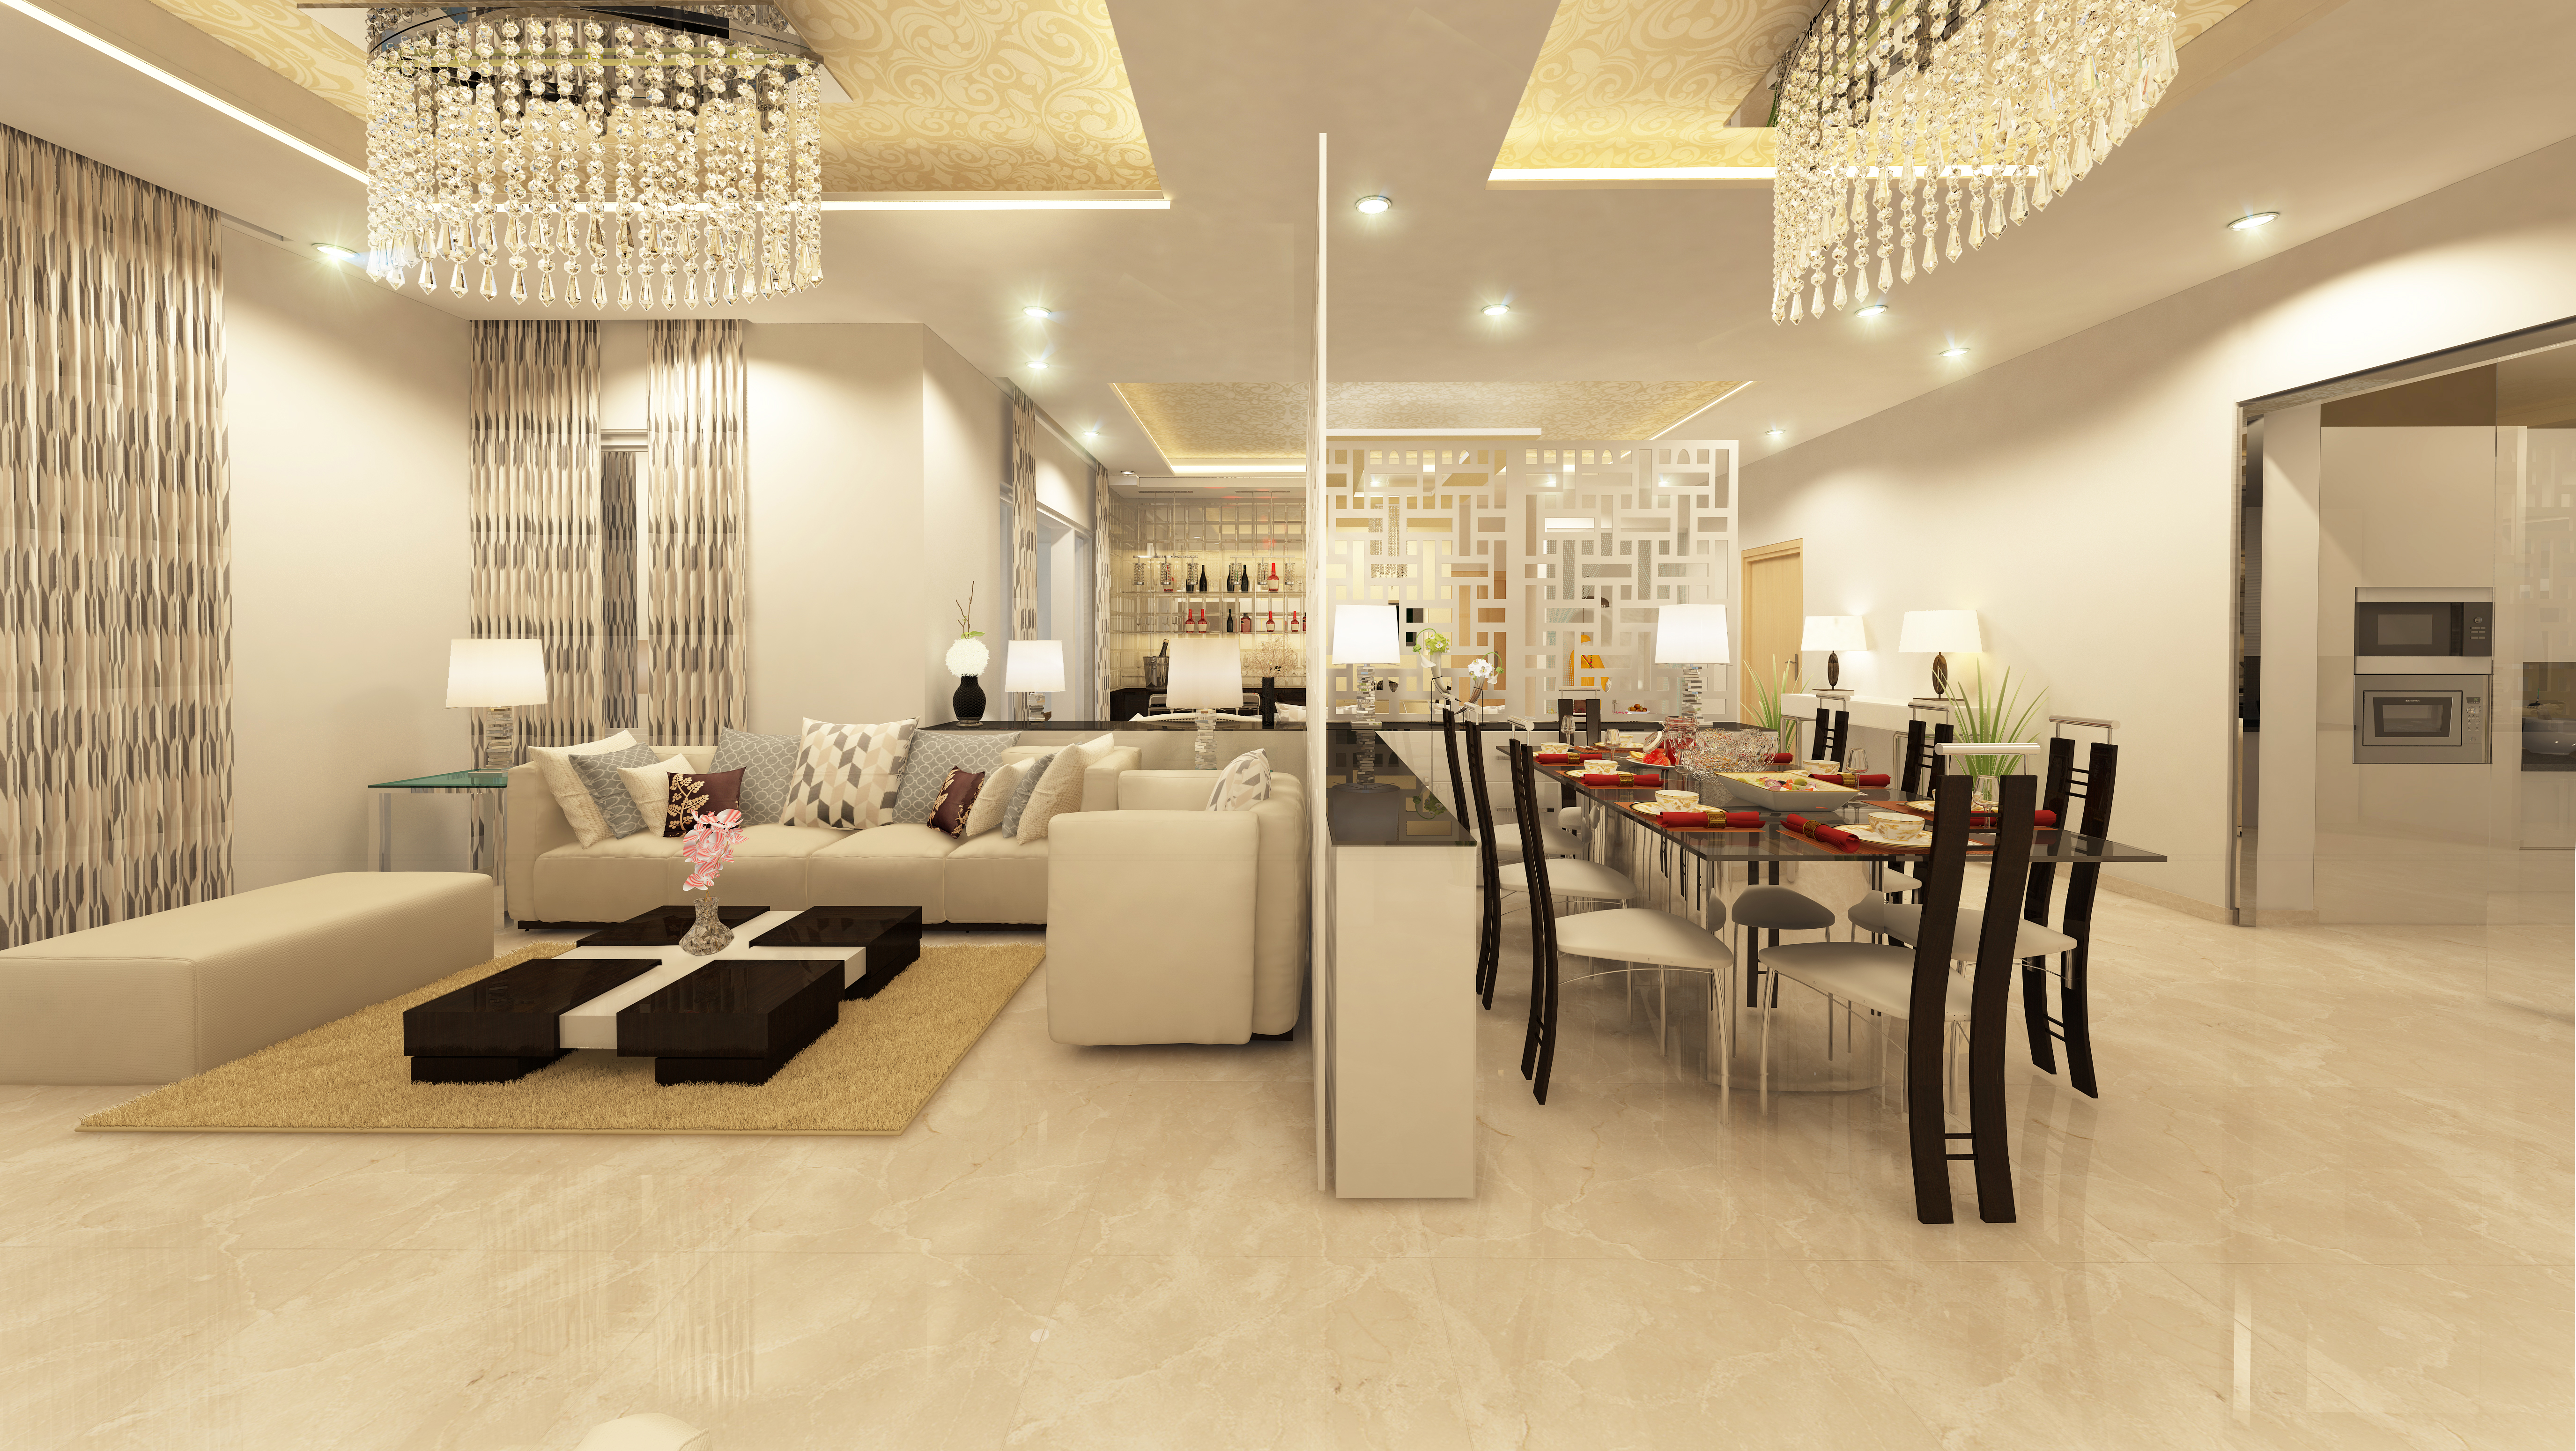 Presidential Tower, Sector-87, Faridabad